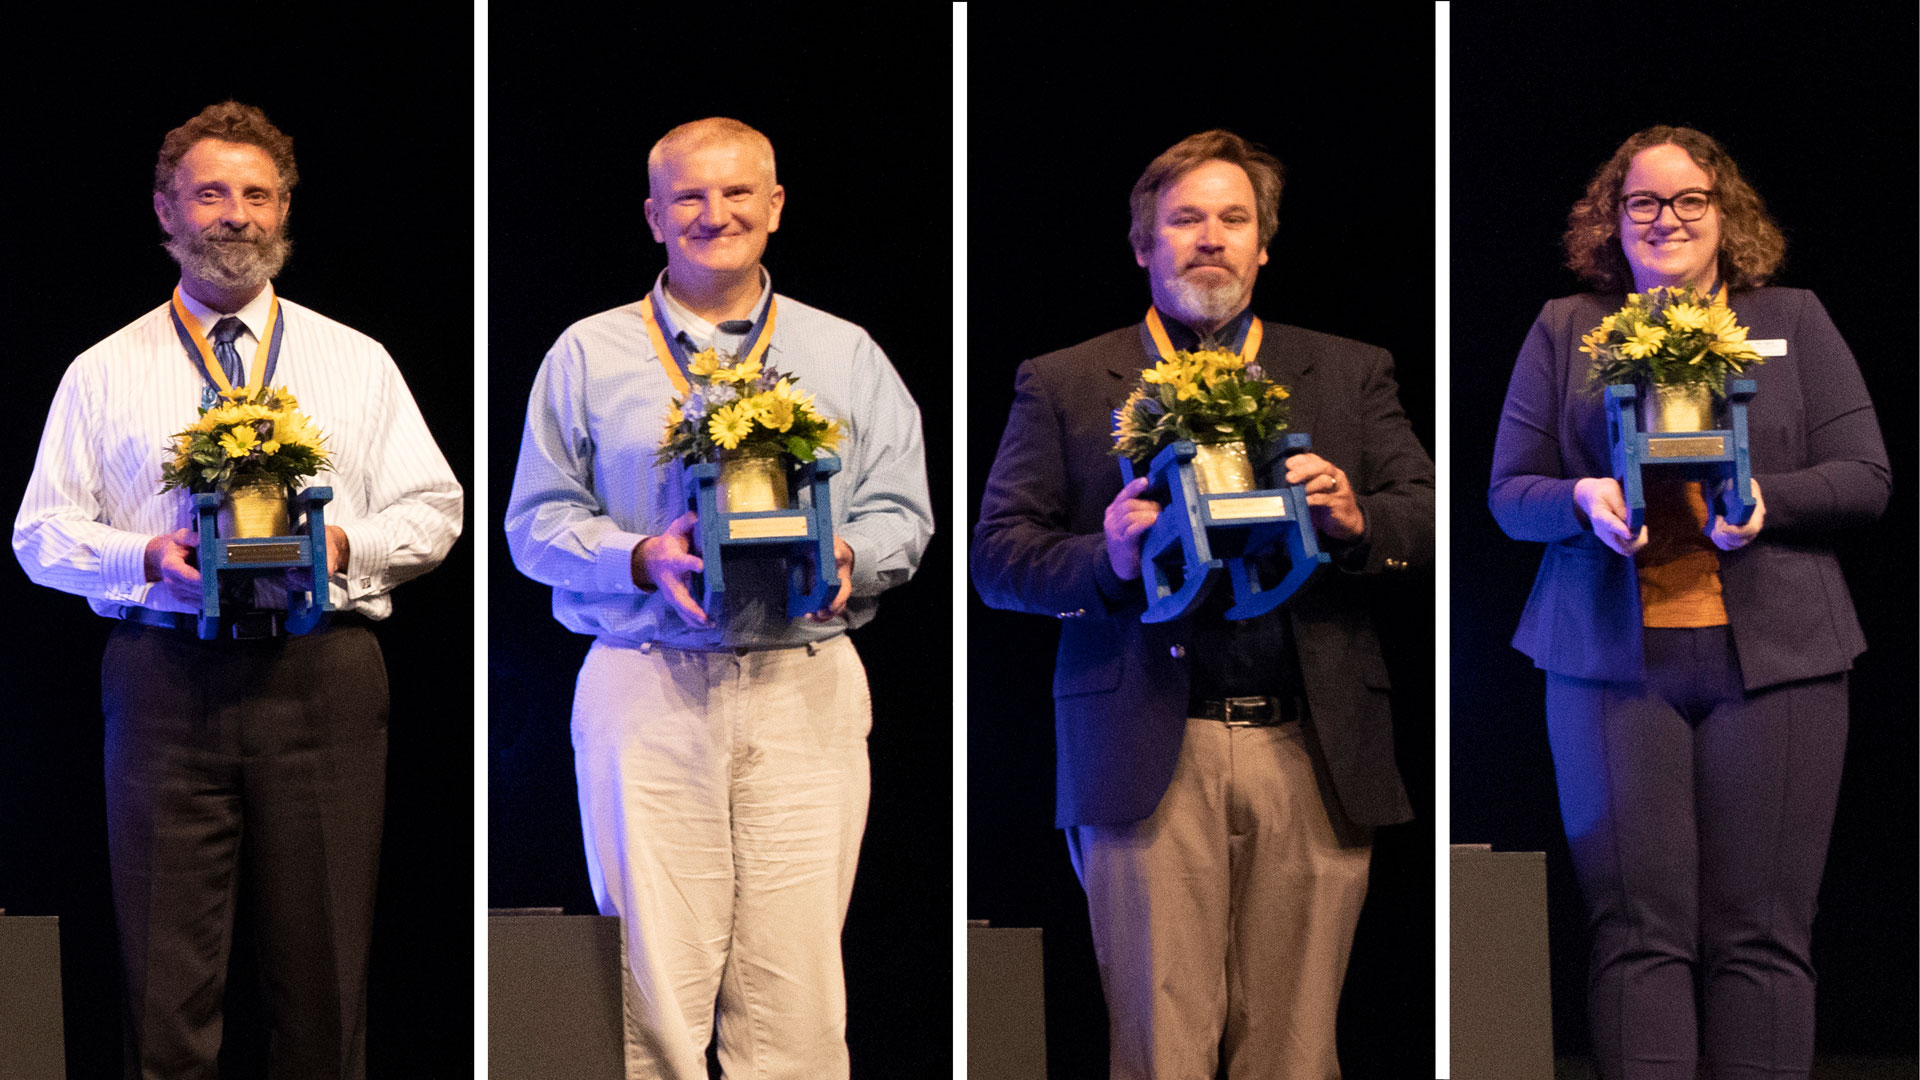 Four IRSC professors were named Endowed Teaching Chairs by the IRSC Foundation